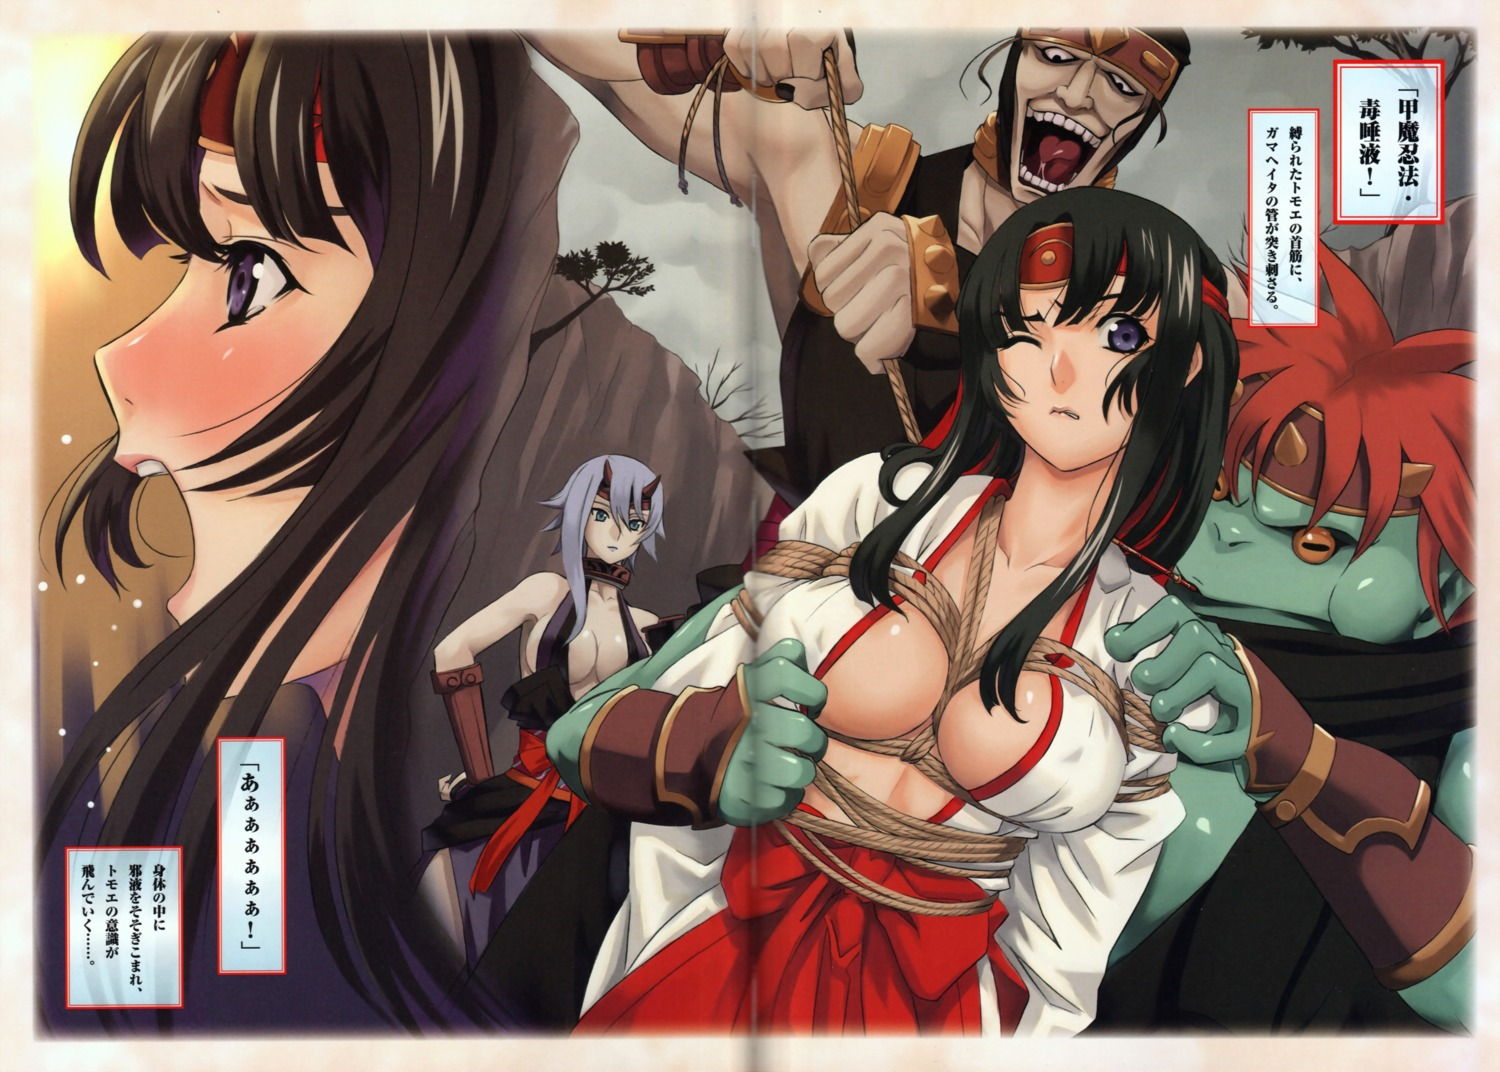 bondage cleavage crease eiwa erect_nipples miko no_bra queen's_blade shizuka tomoe